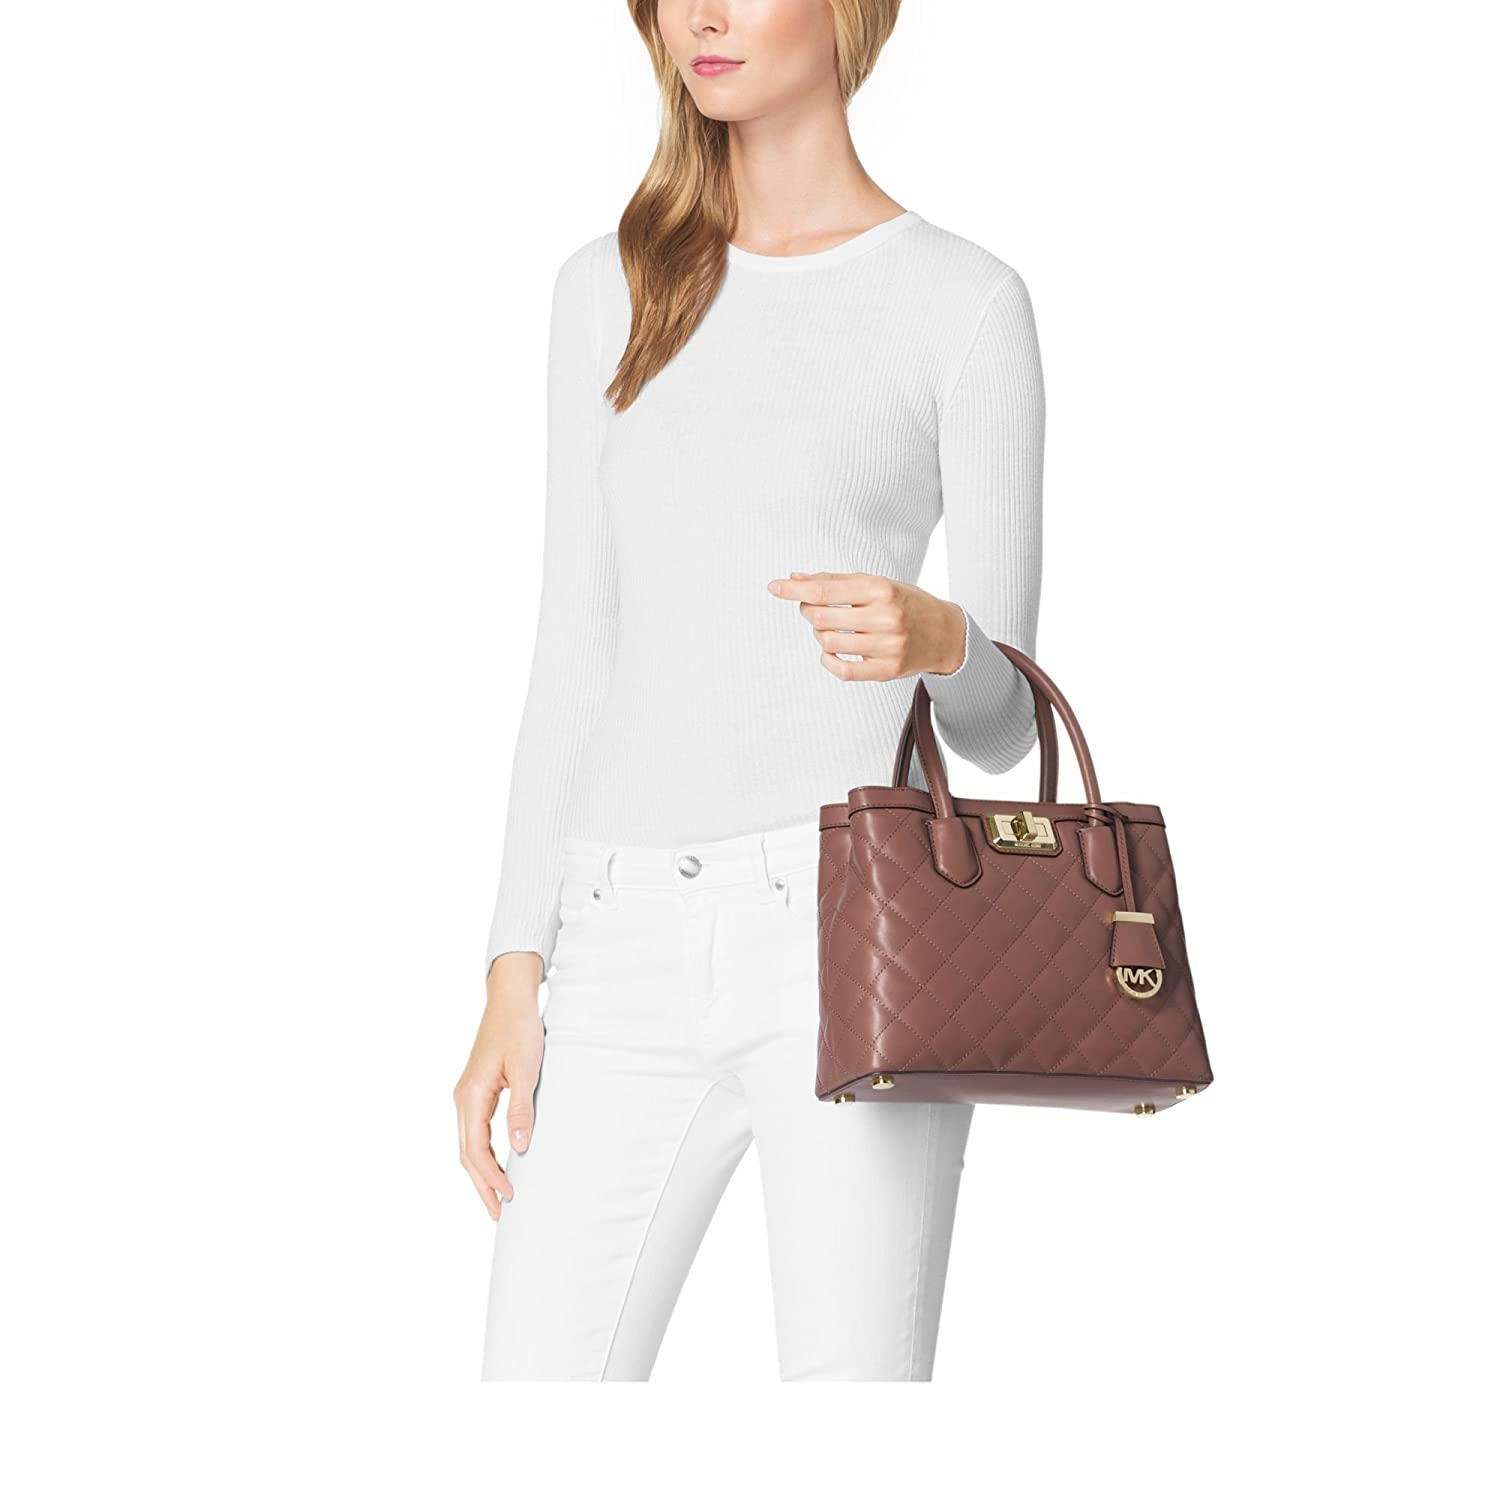 cb61b589b4b0 ... Michael Kors Hannah Small Satchel Dusty Rose Handbags Amazon Michael  Kors Sutton ...